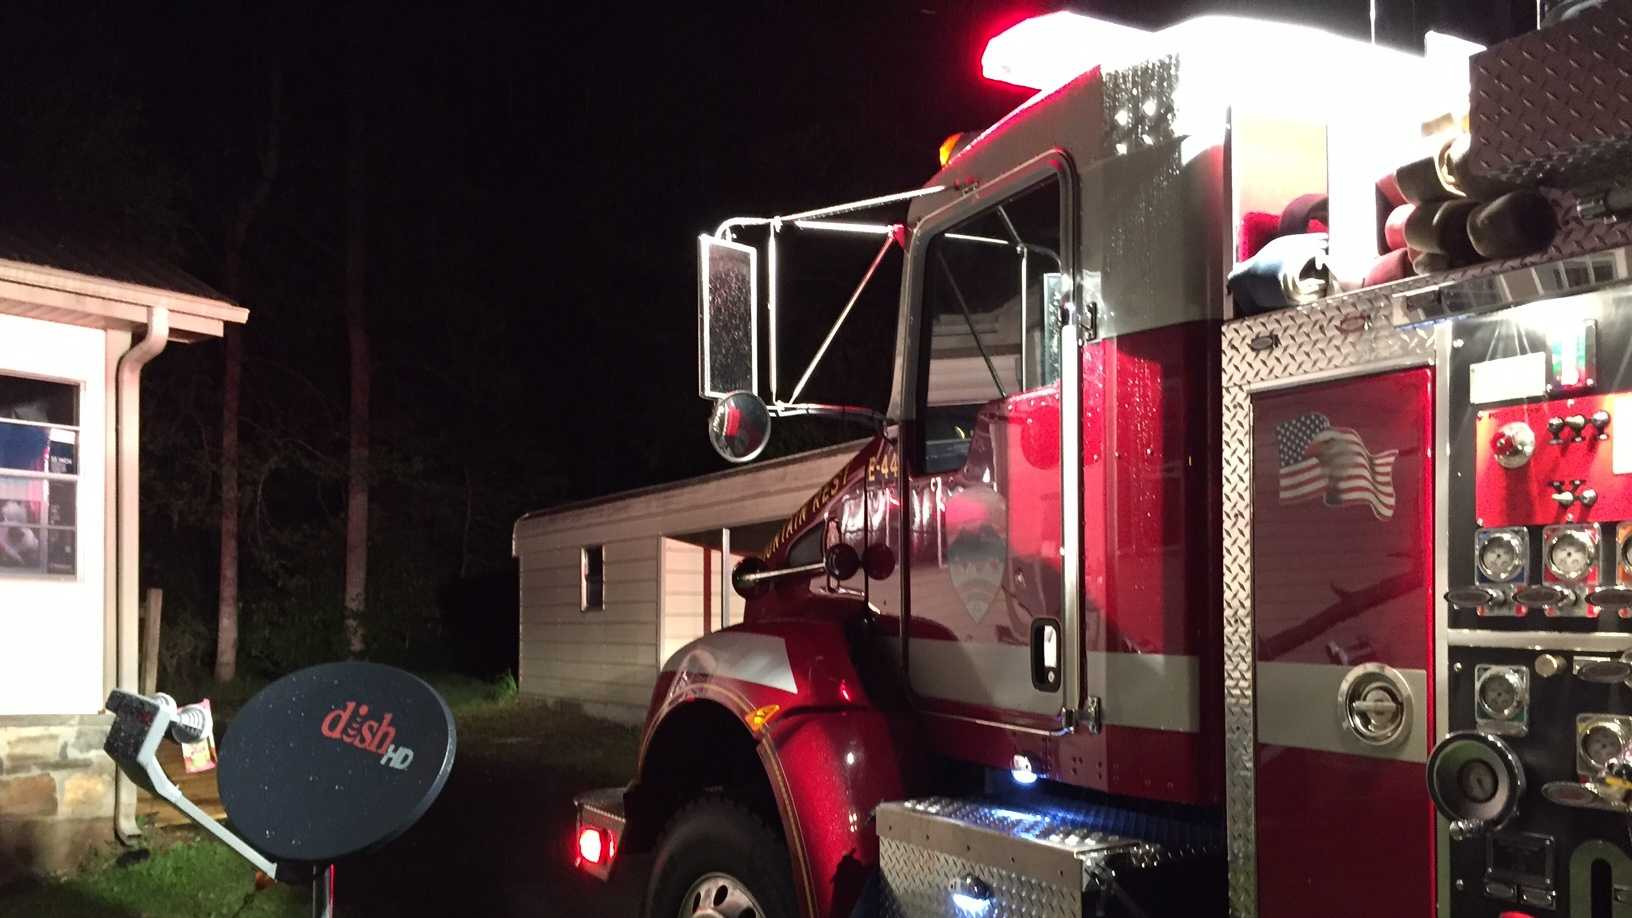 Firefighters respond to Oconee County house fire